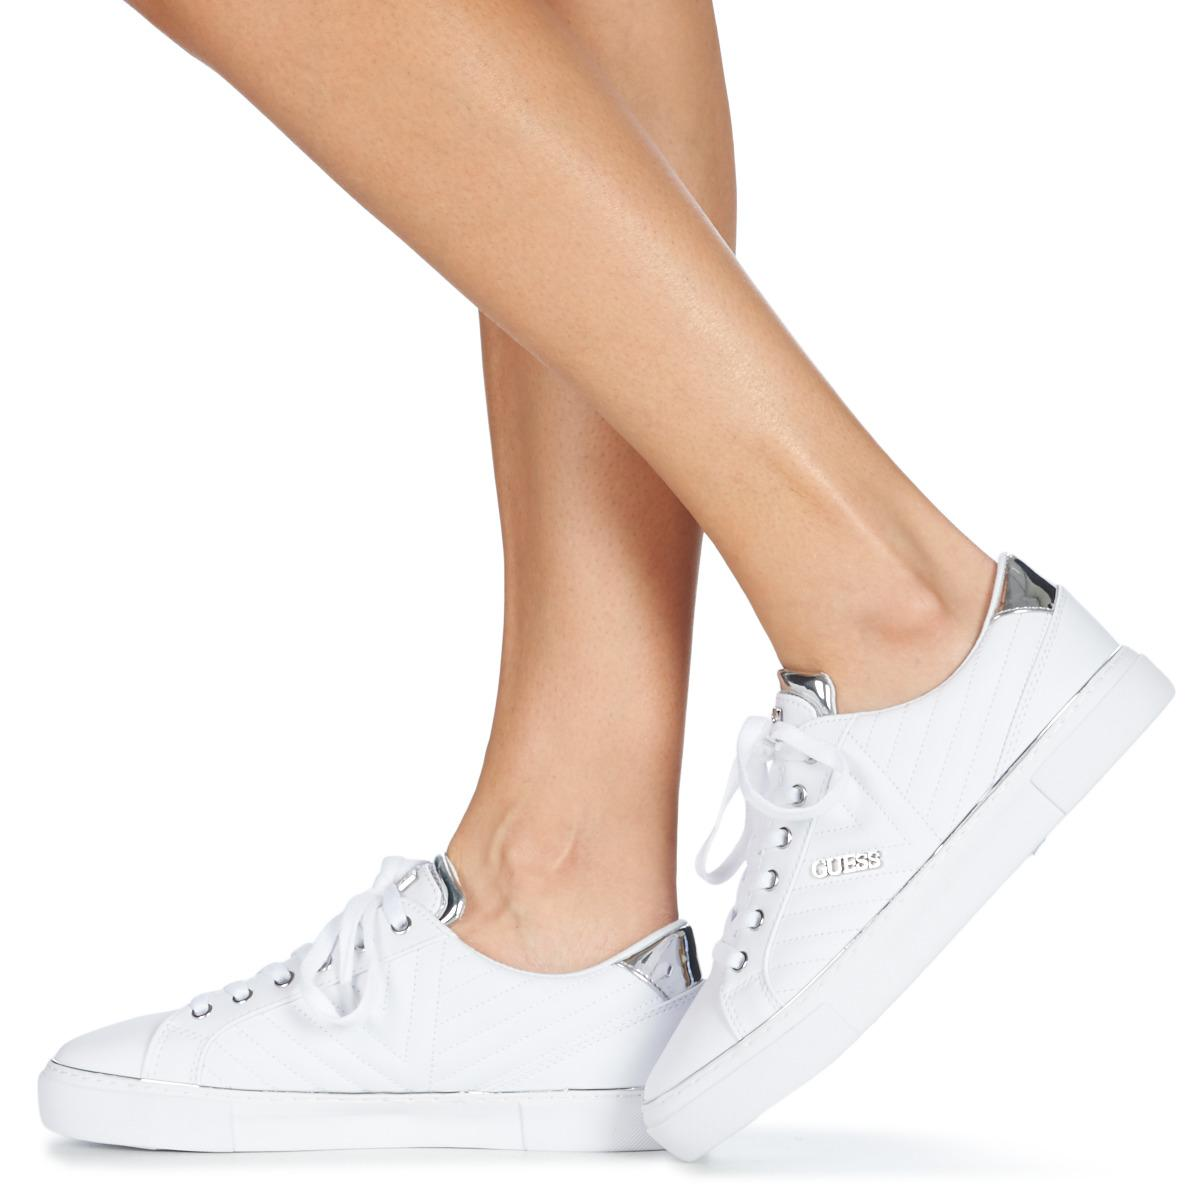 Guess Groovie Shoes (trainers) in White